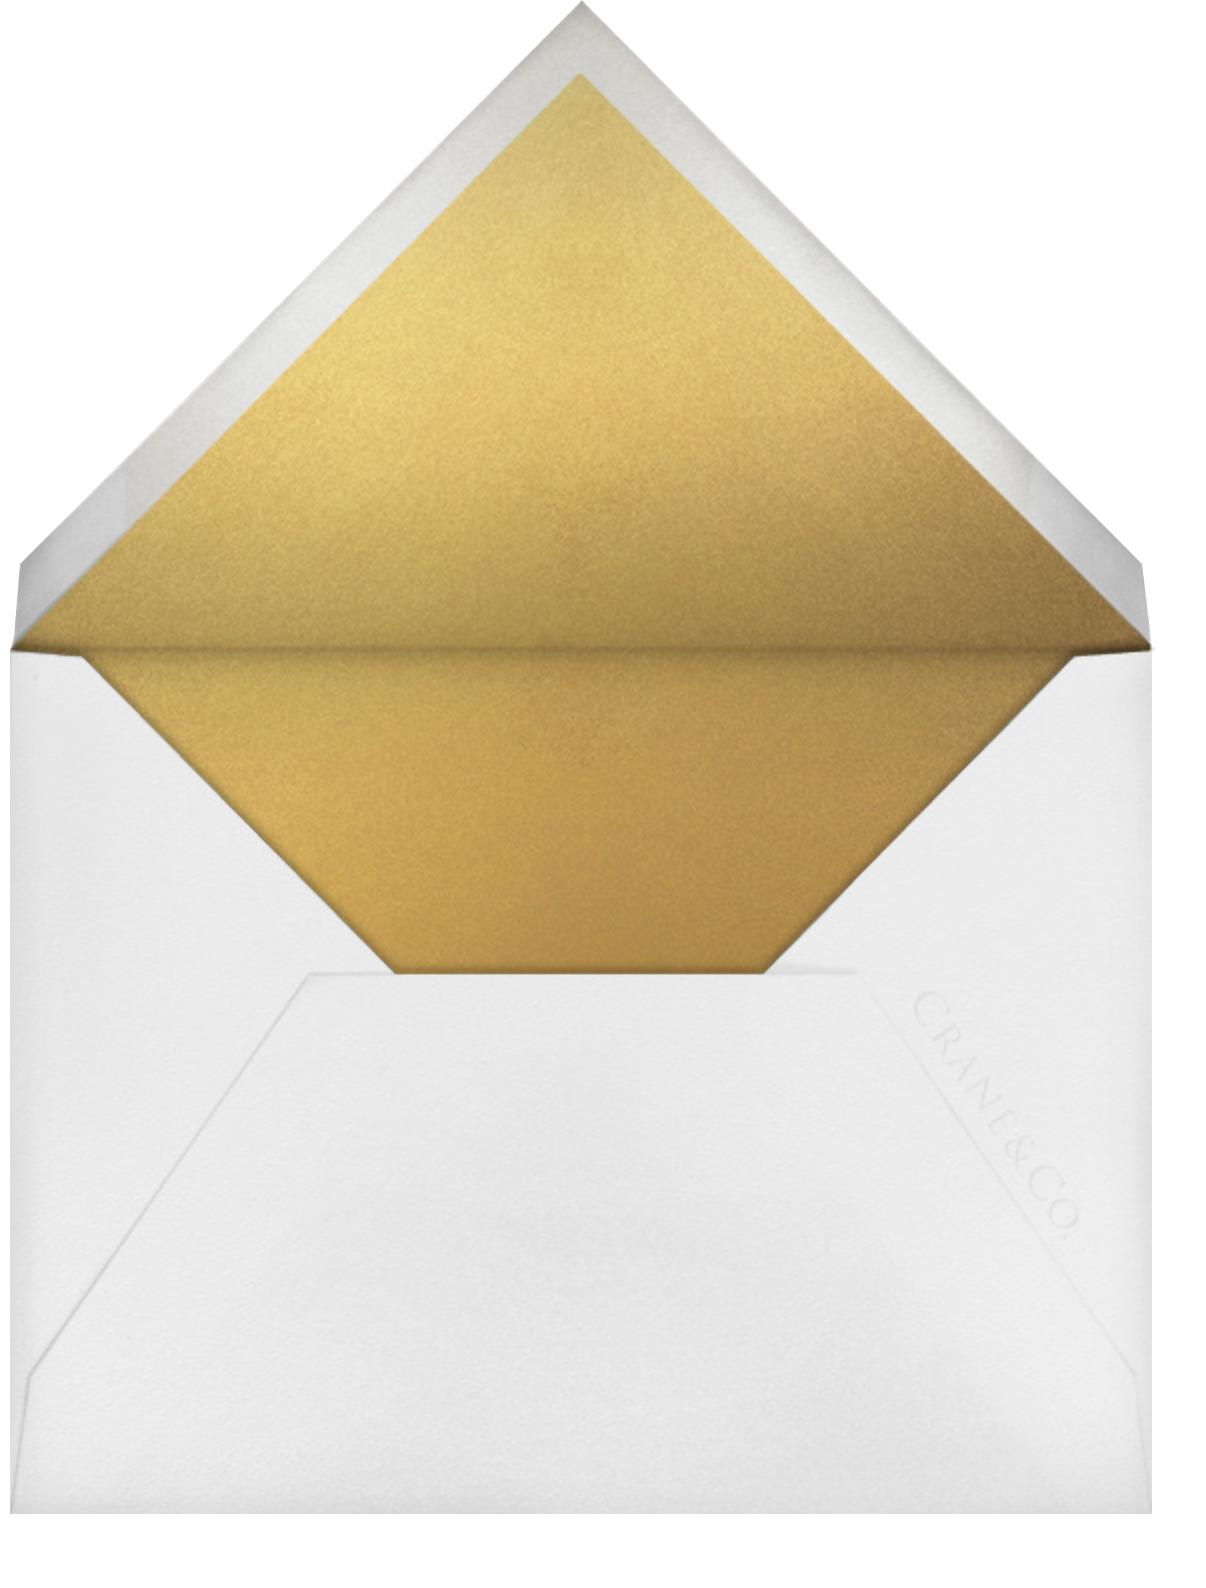 Escalier (Greeting) - Ivory and Gold - Paperless Post - Envelope